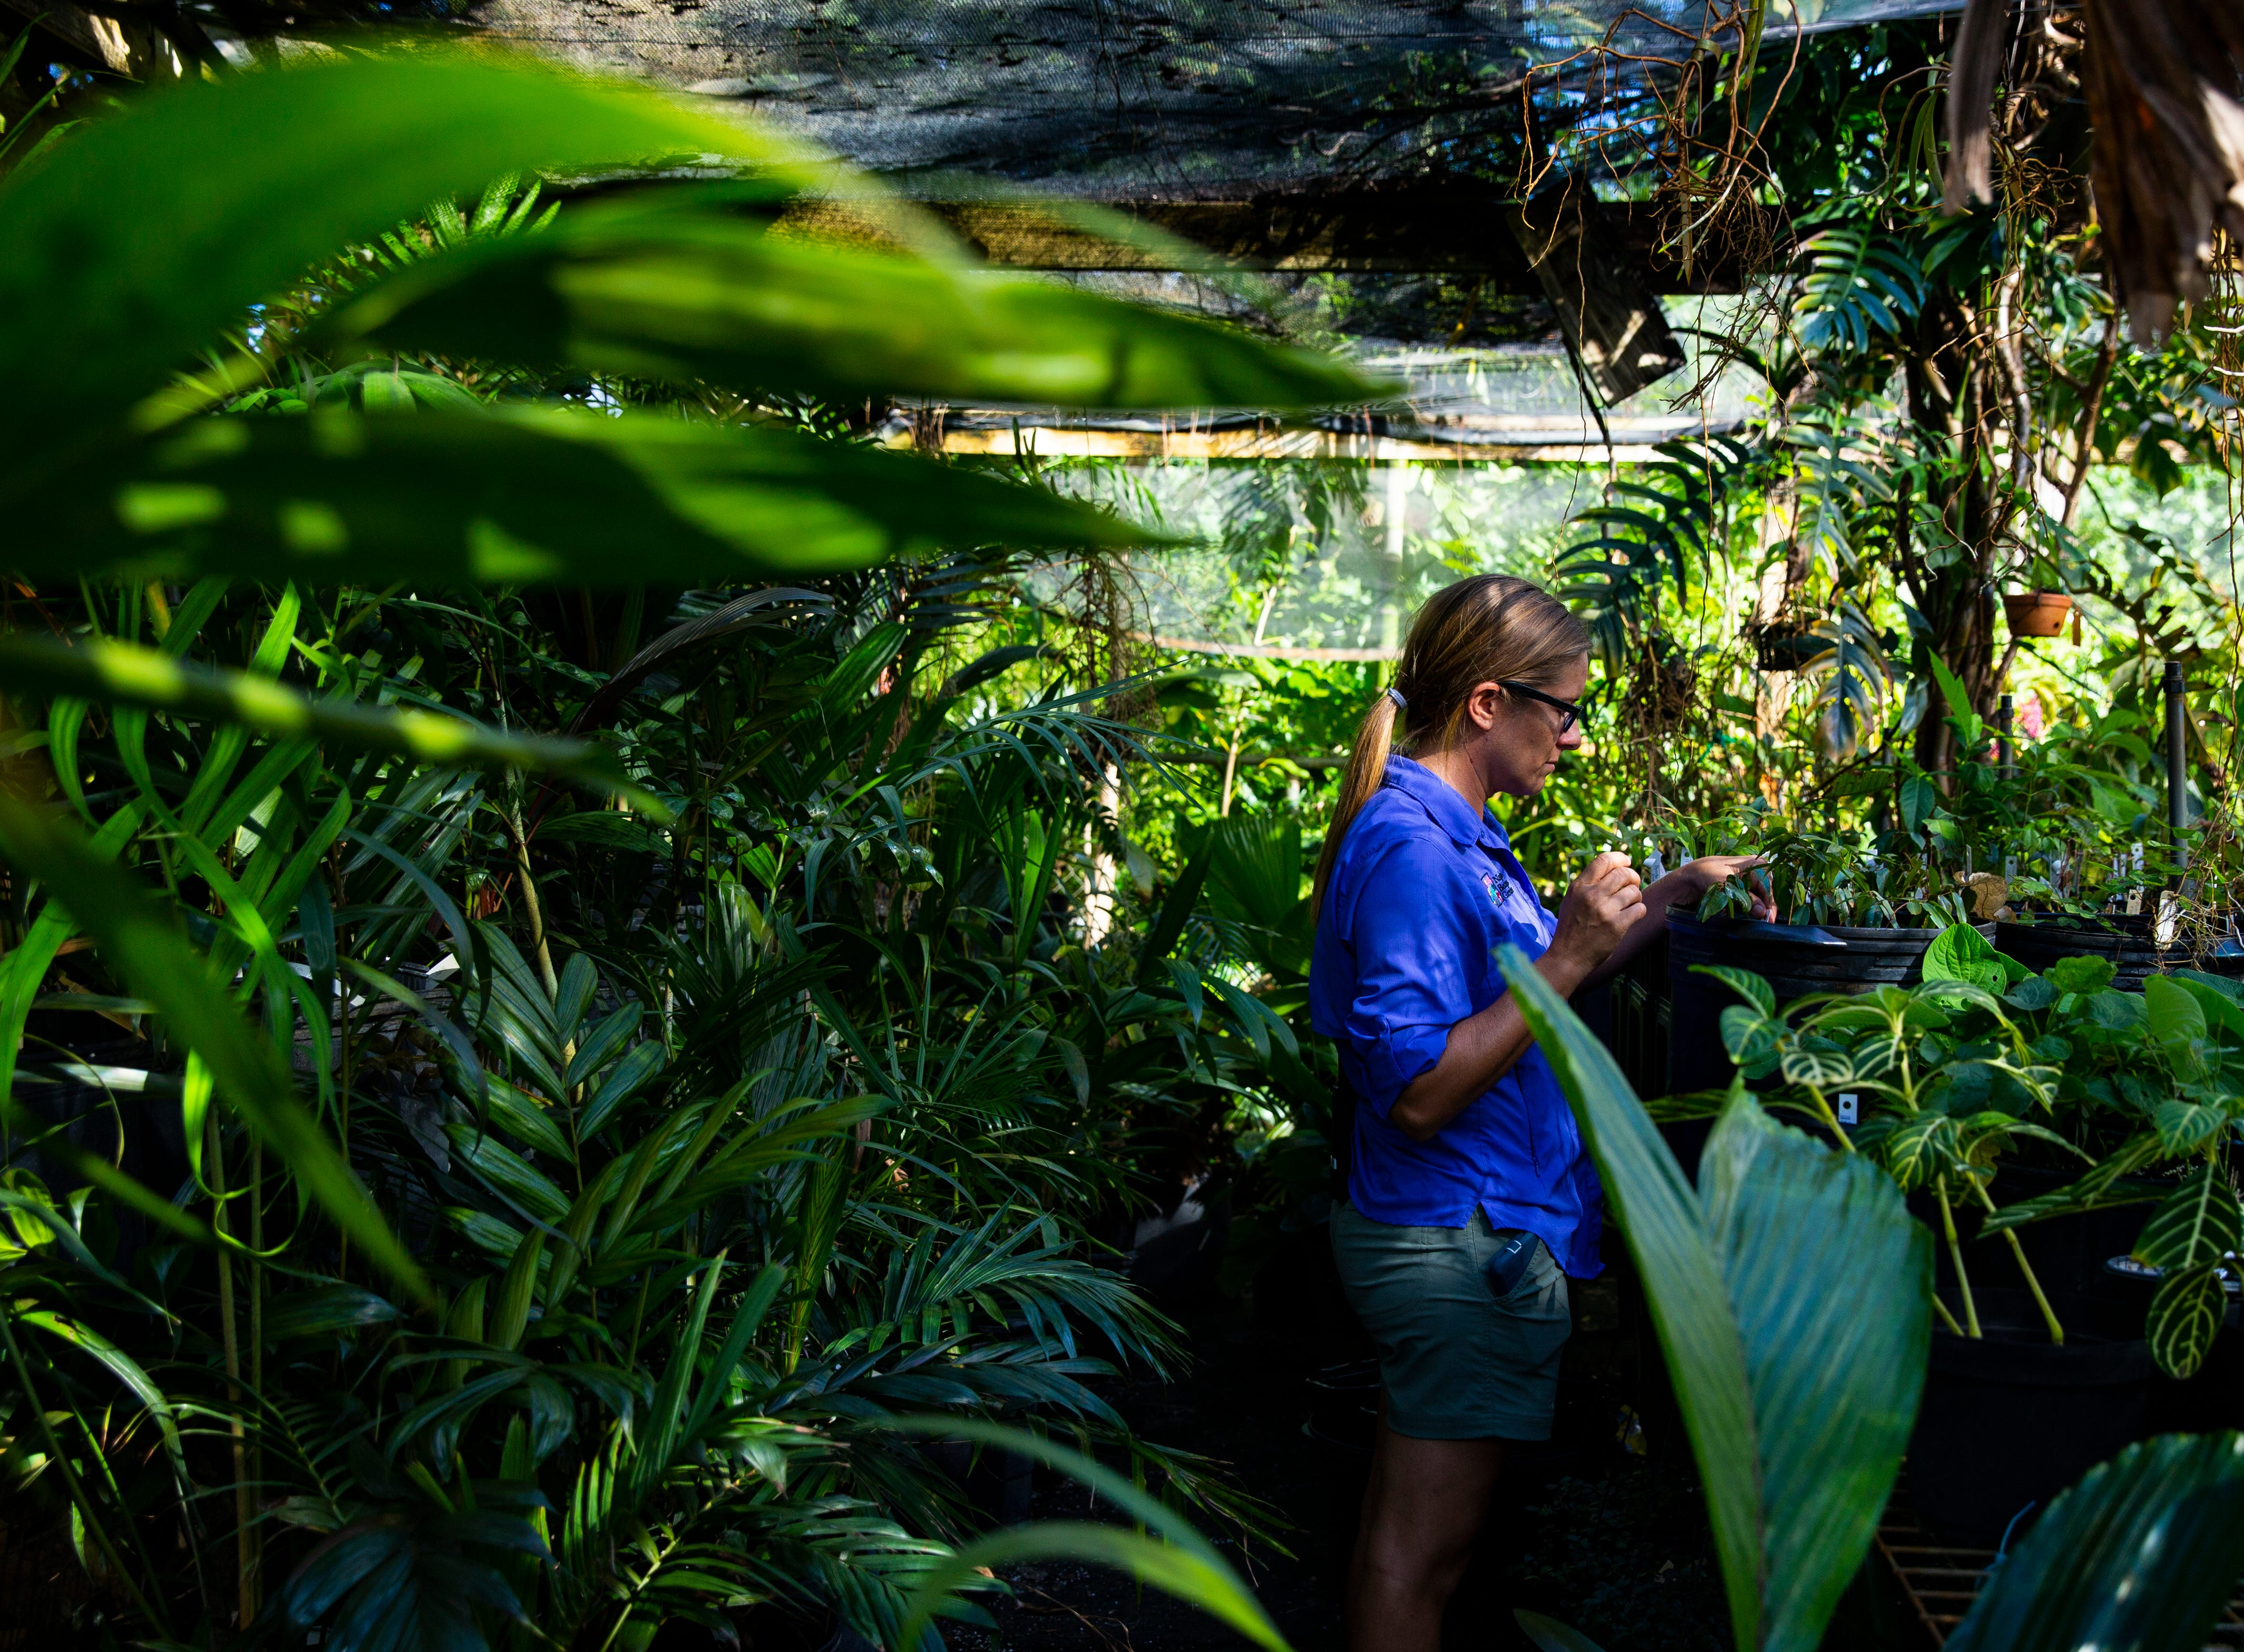 Naples Botanical Garden nursery manager, Andrea Grace, takes care of several seedlings and plants that were transported from Puerto Rico to Naples Botanical Garden during Hurricane Maria. Nearly 86 seedlings were transported from Puerto Rico to Naples during Maria. Nov. 15, 2018.